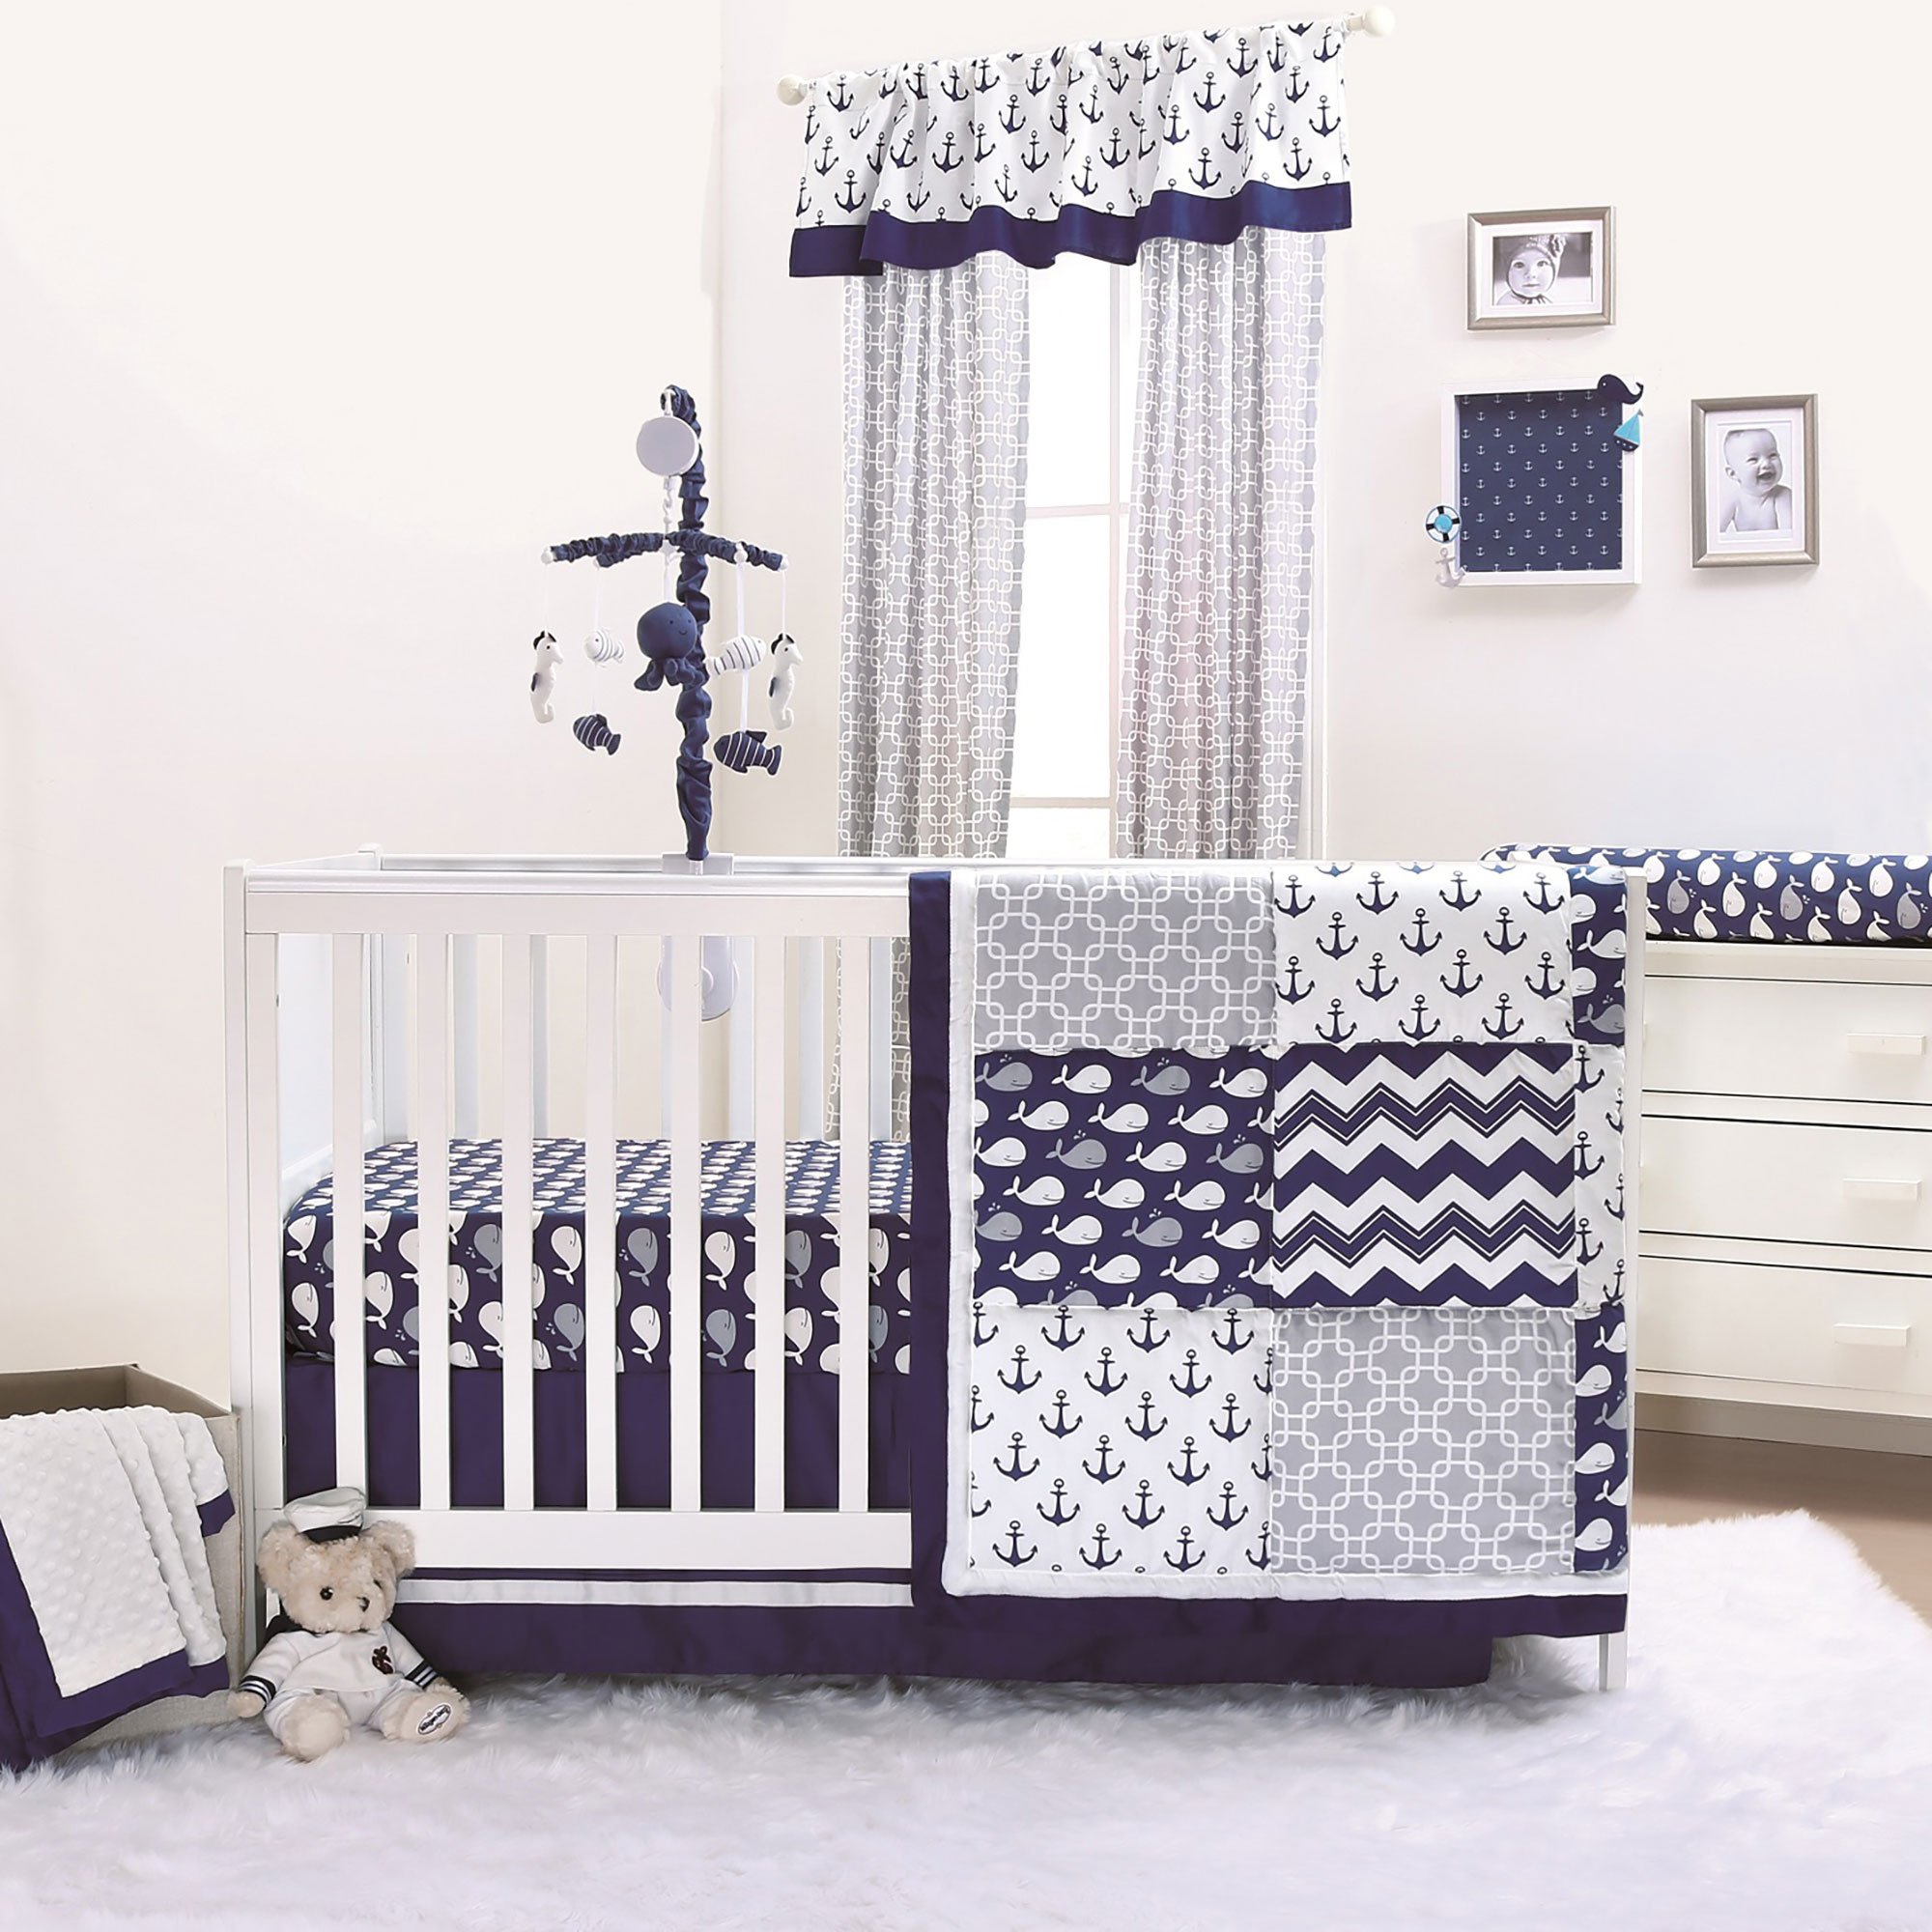 Nautical crib fitted sheet sailor cotton navy bedding baby boy nursery toddler transition bed 4 to 6 inches matress nursery